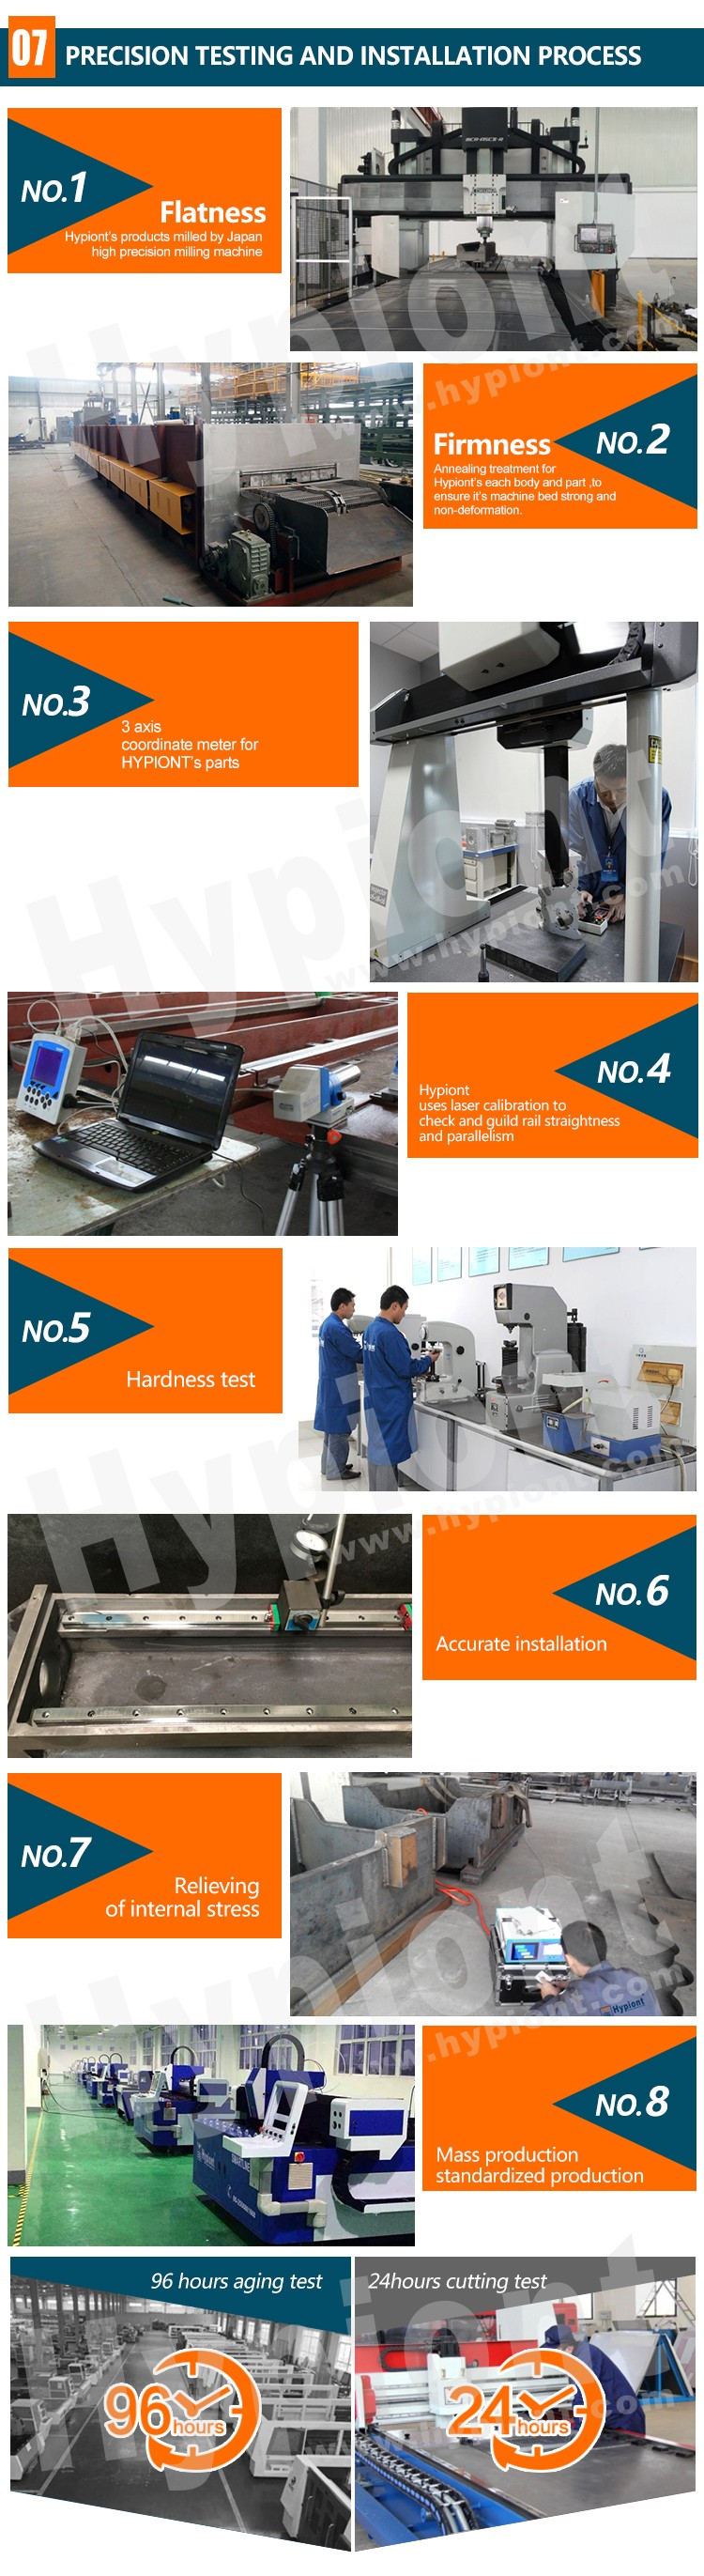 5 axis waterjet machine with CE TUV ISO9001 certifications 3years warranty for metal stone glass meet standard JIS-R no3211-1998